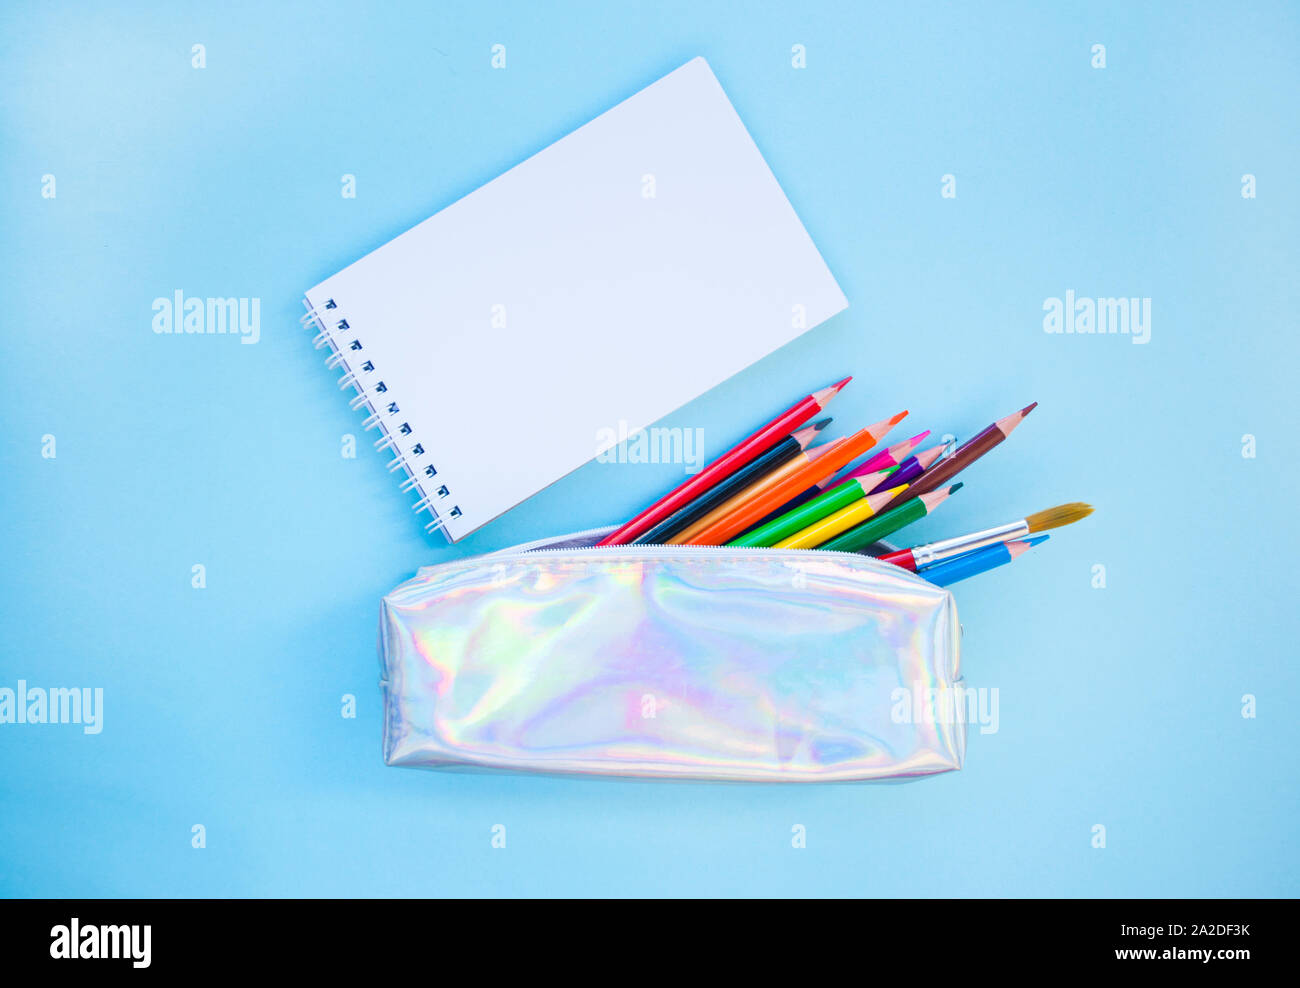 Colorful pencils, watercolors, holographic pencil box on blue background with copyspace. Flat lay style. Back to school concept. Stock Photo